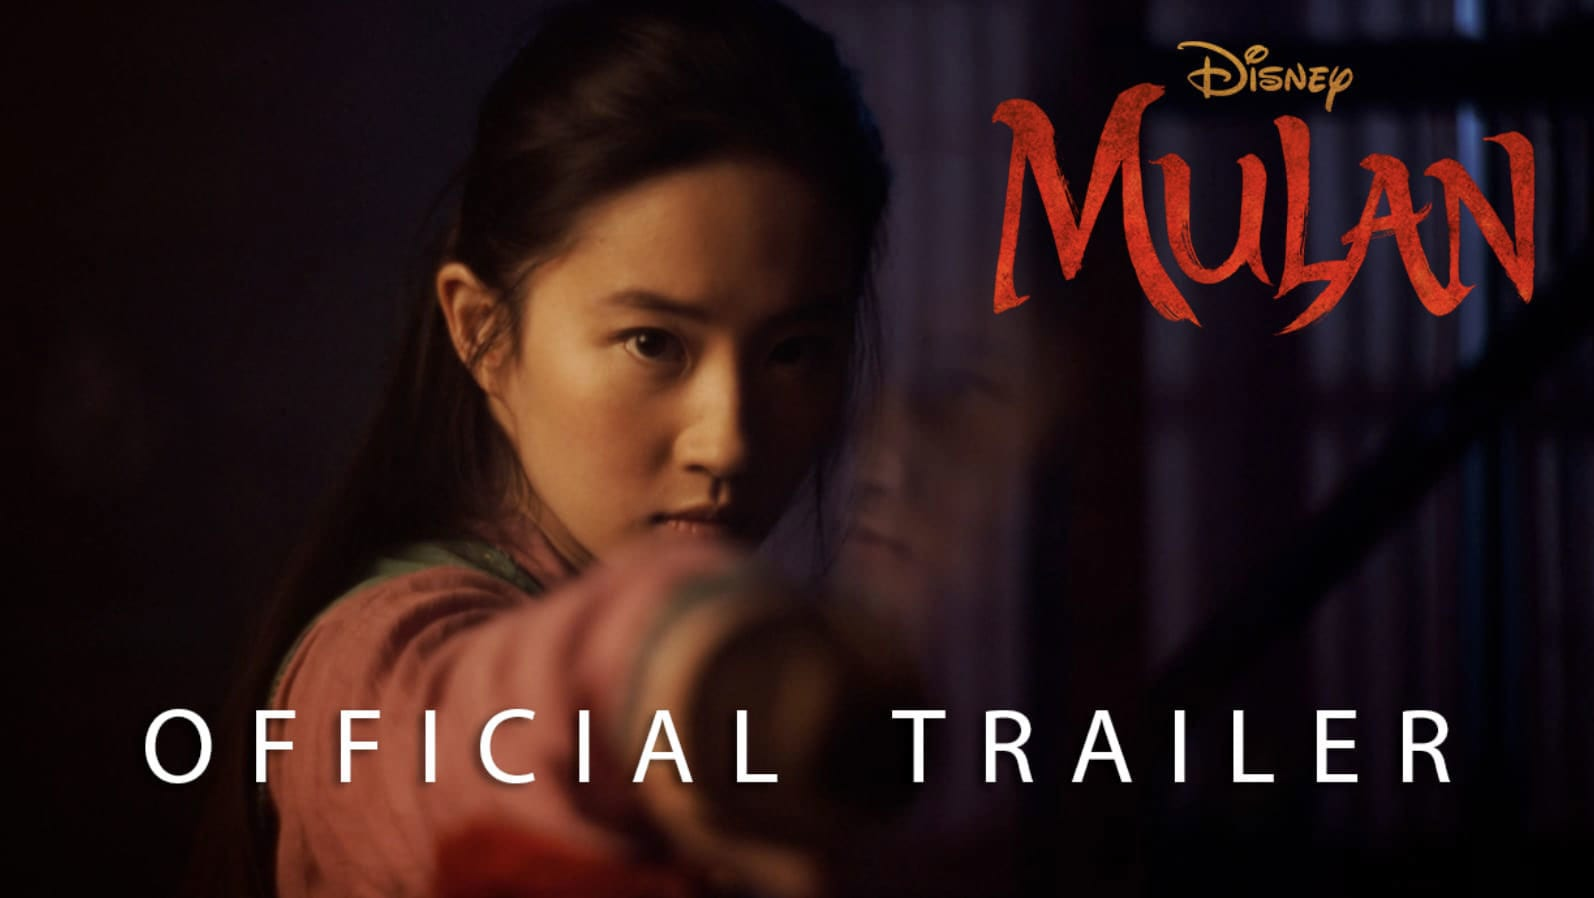 Disney's Mulan Trailer